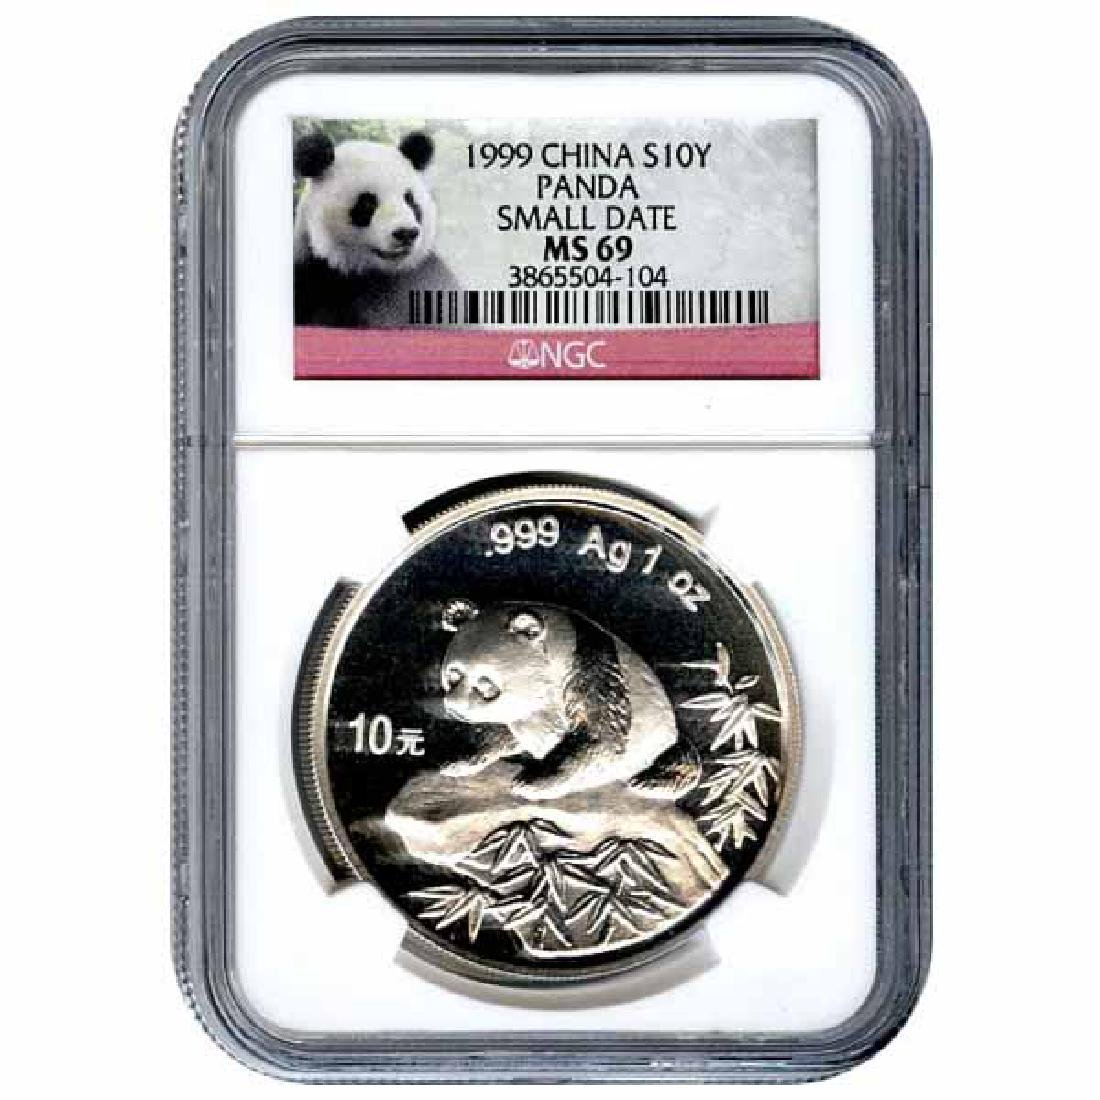 Certified Chinese Panda One Ounce 1999 Small Date MS69